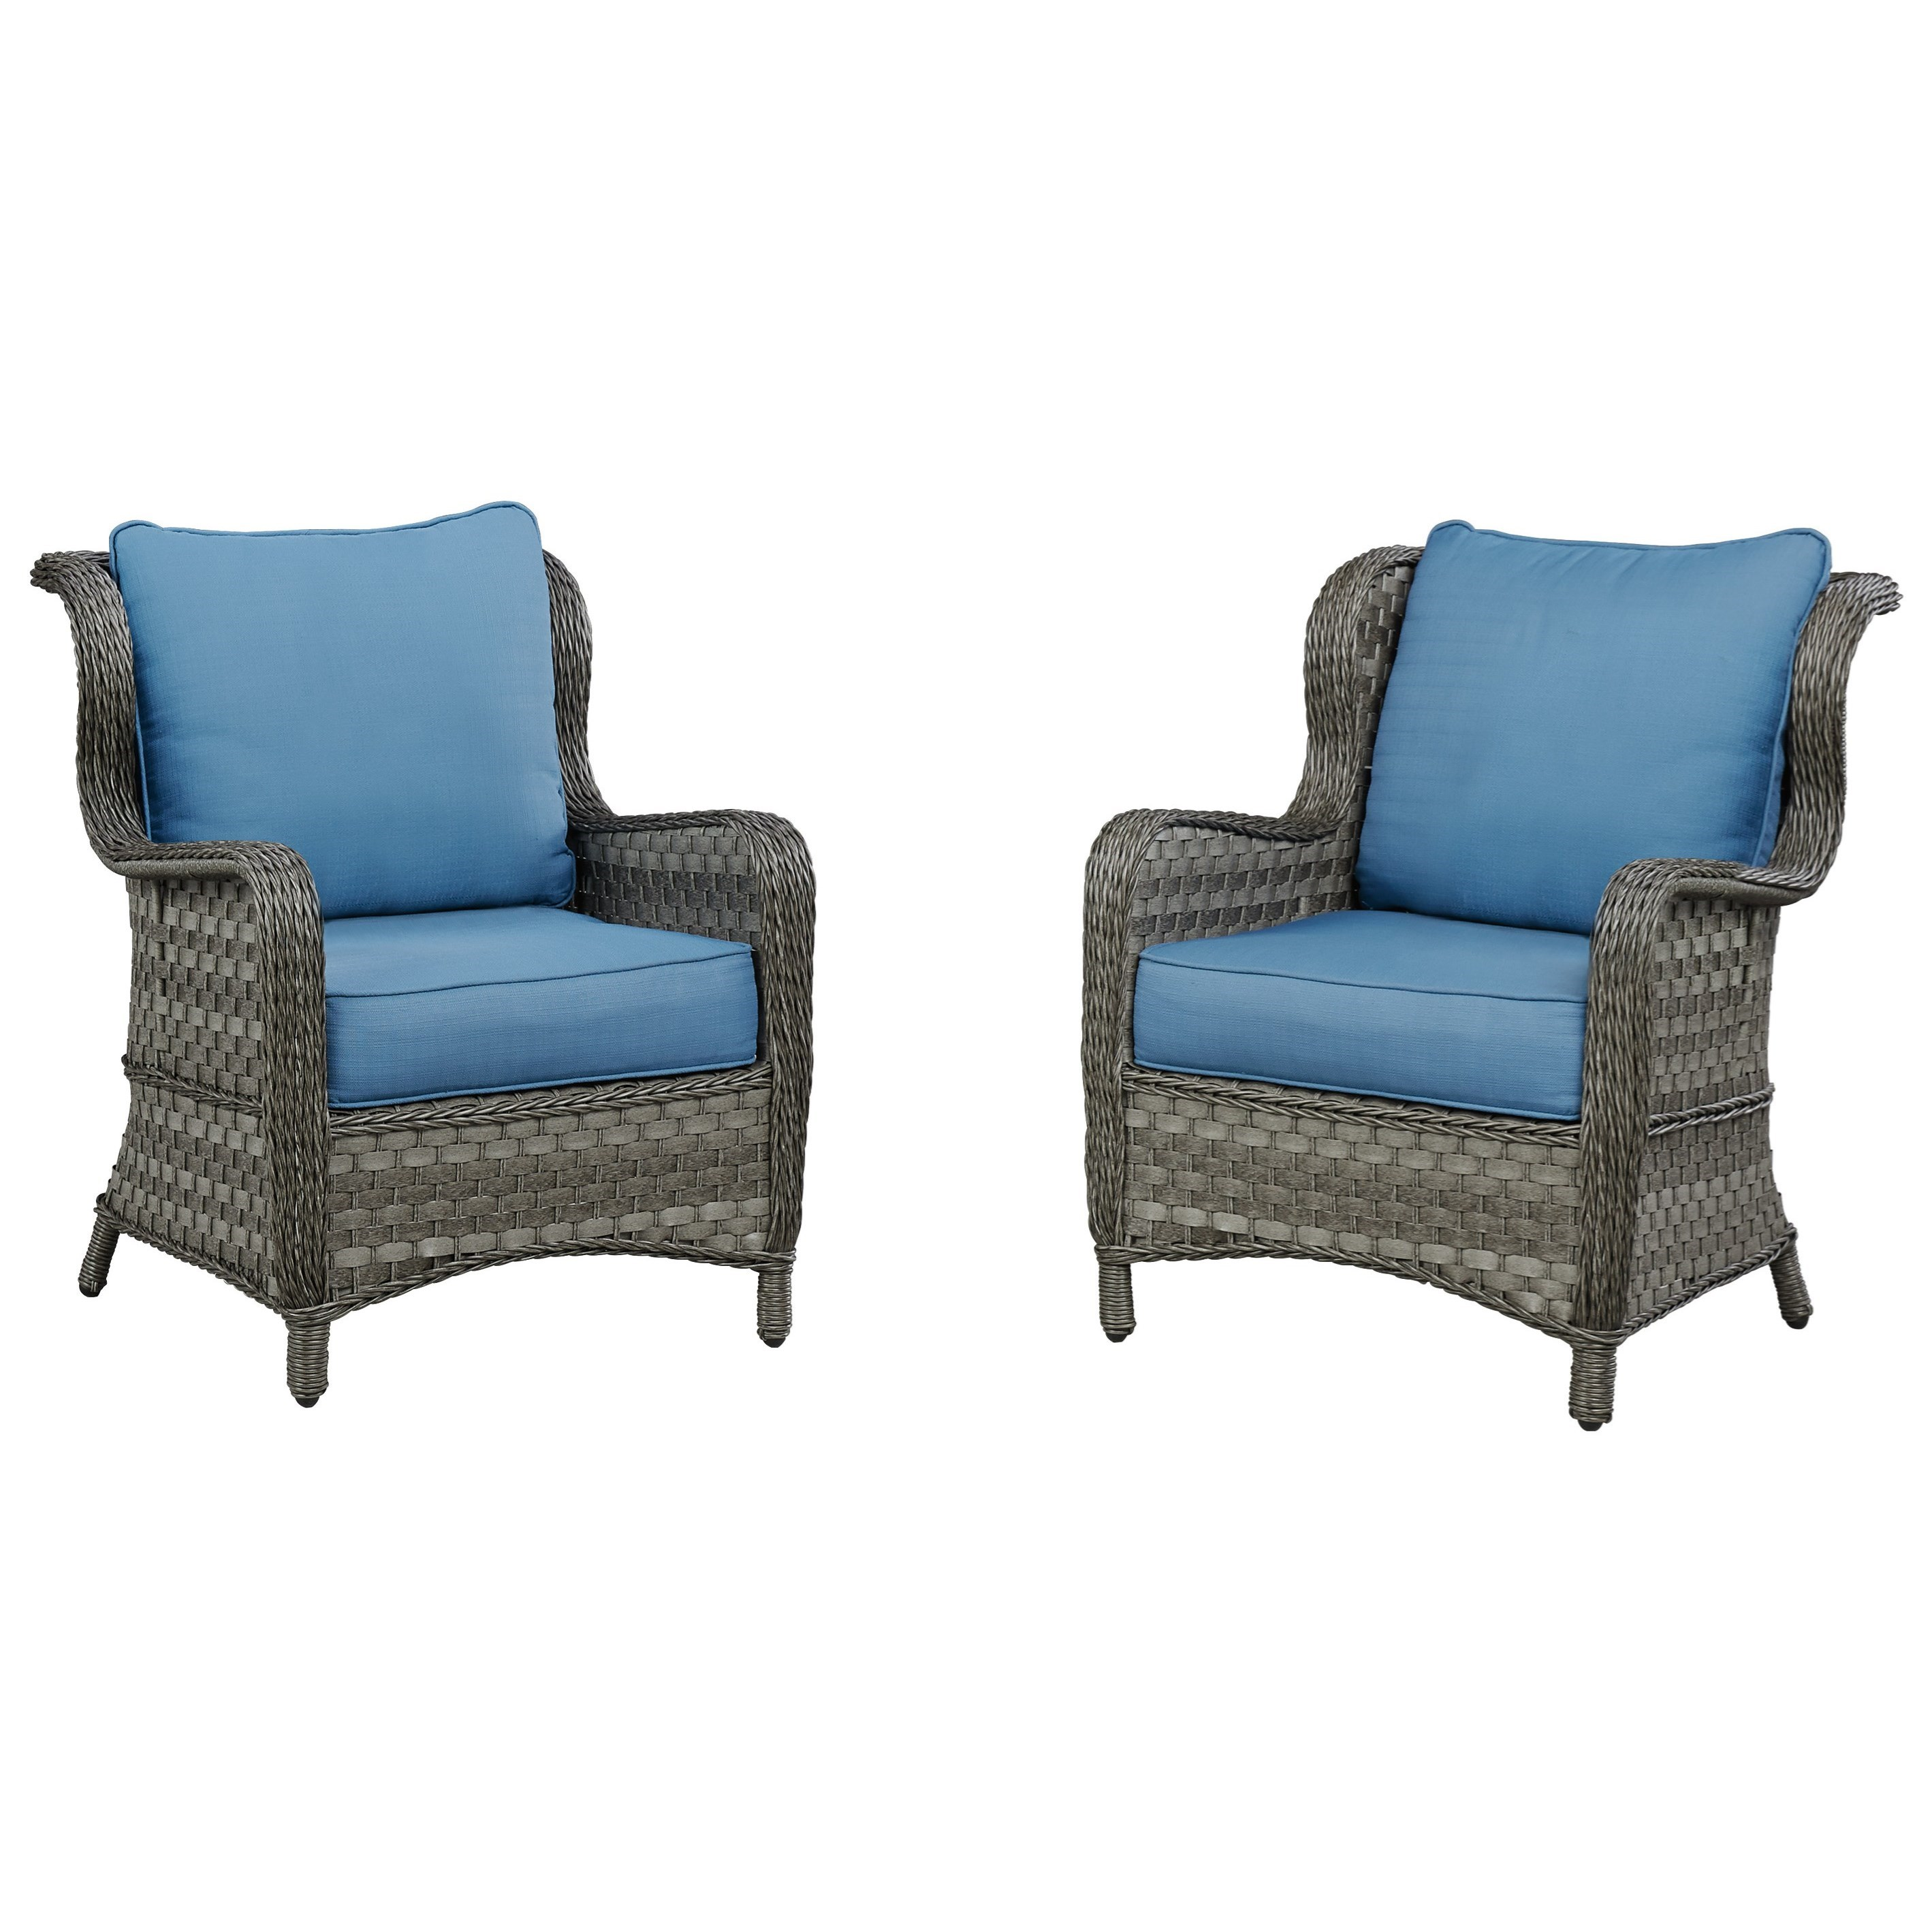 Set of 2 Outdoor Lounge Chairs w/ Cushion